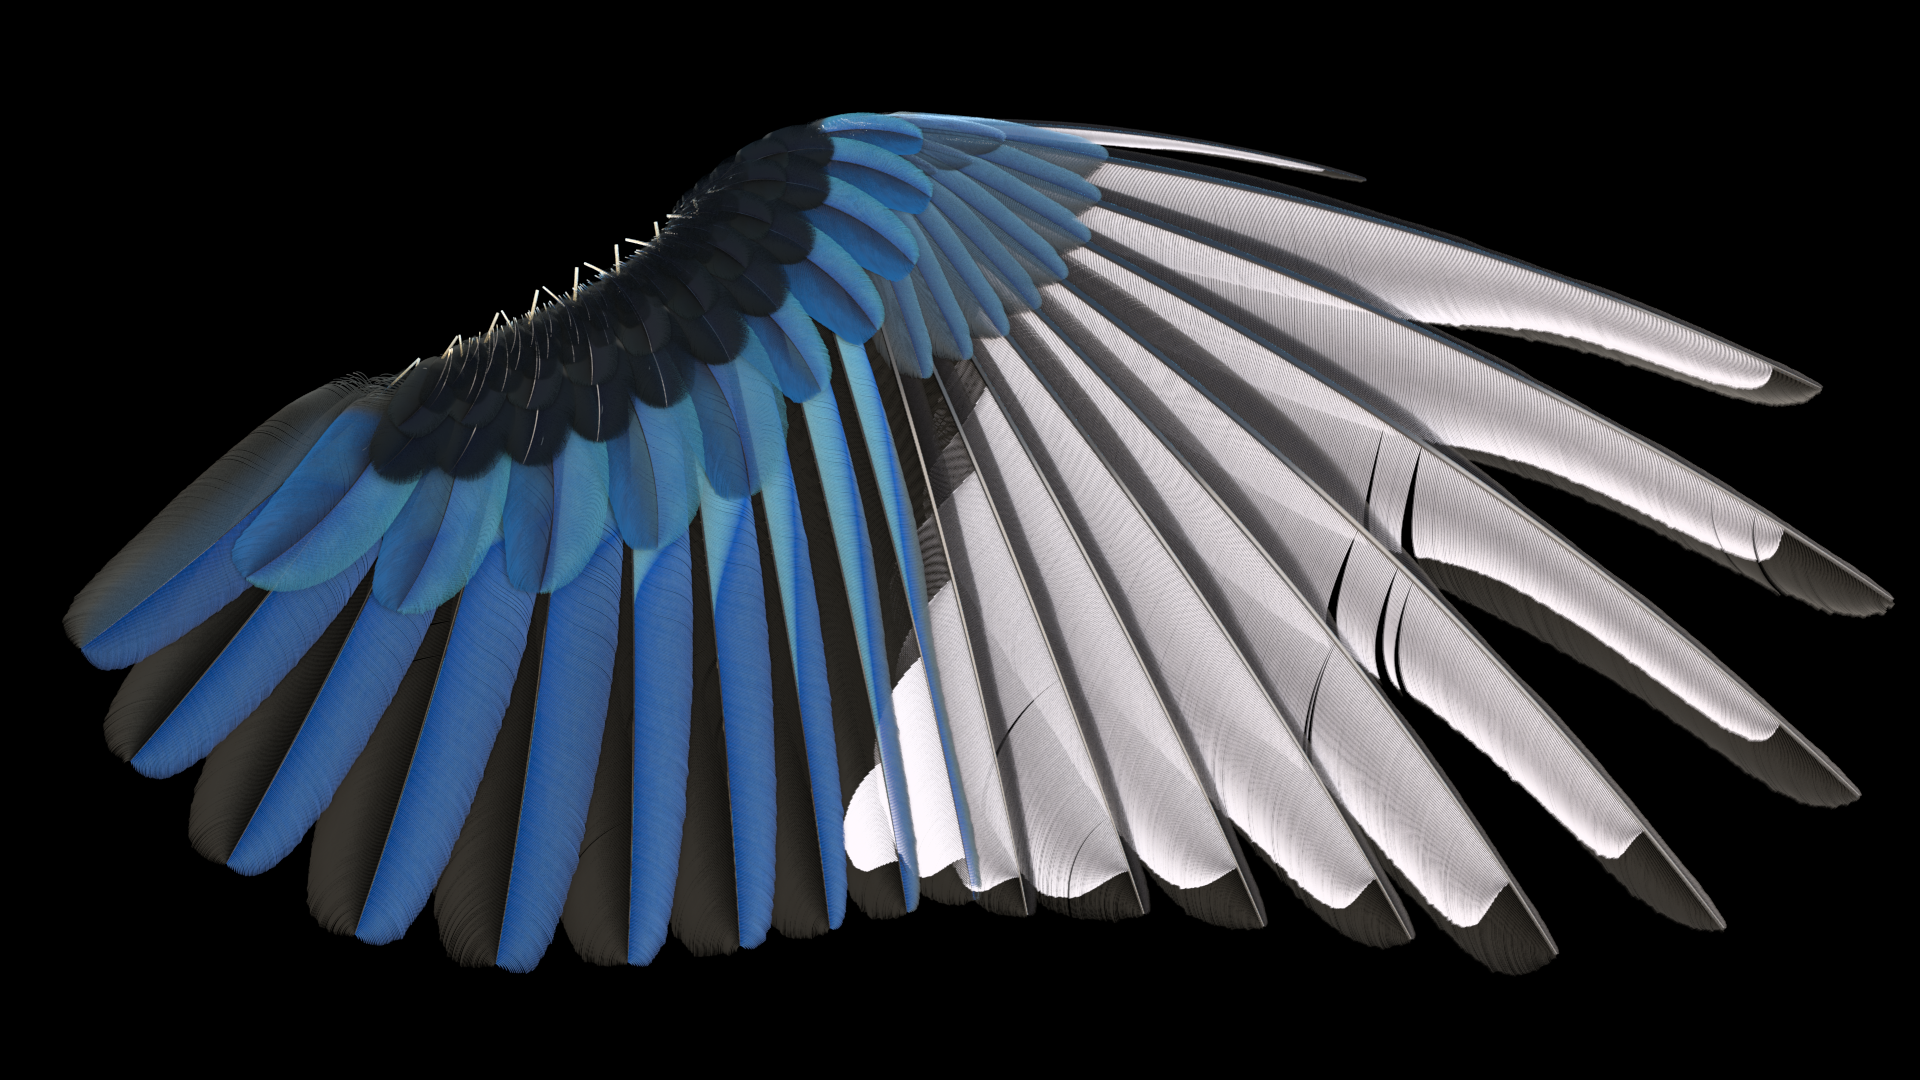 feather tools sidefx